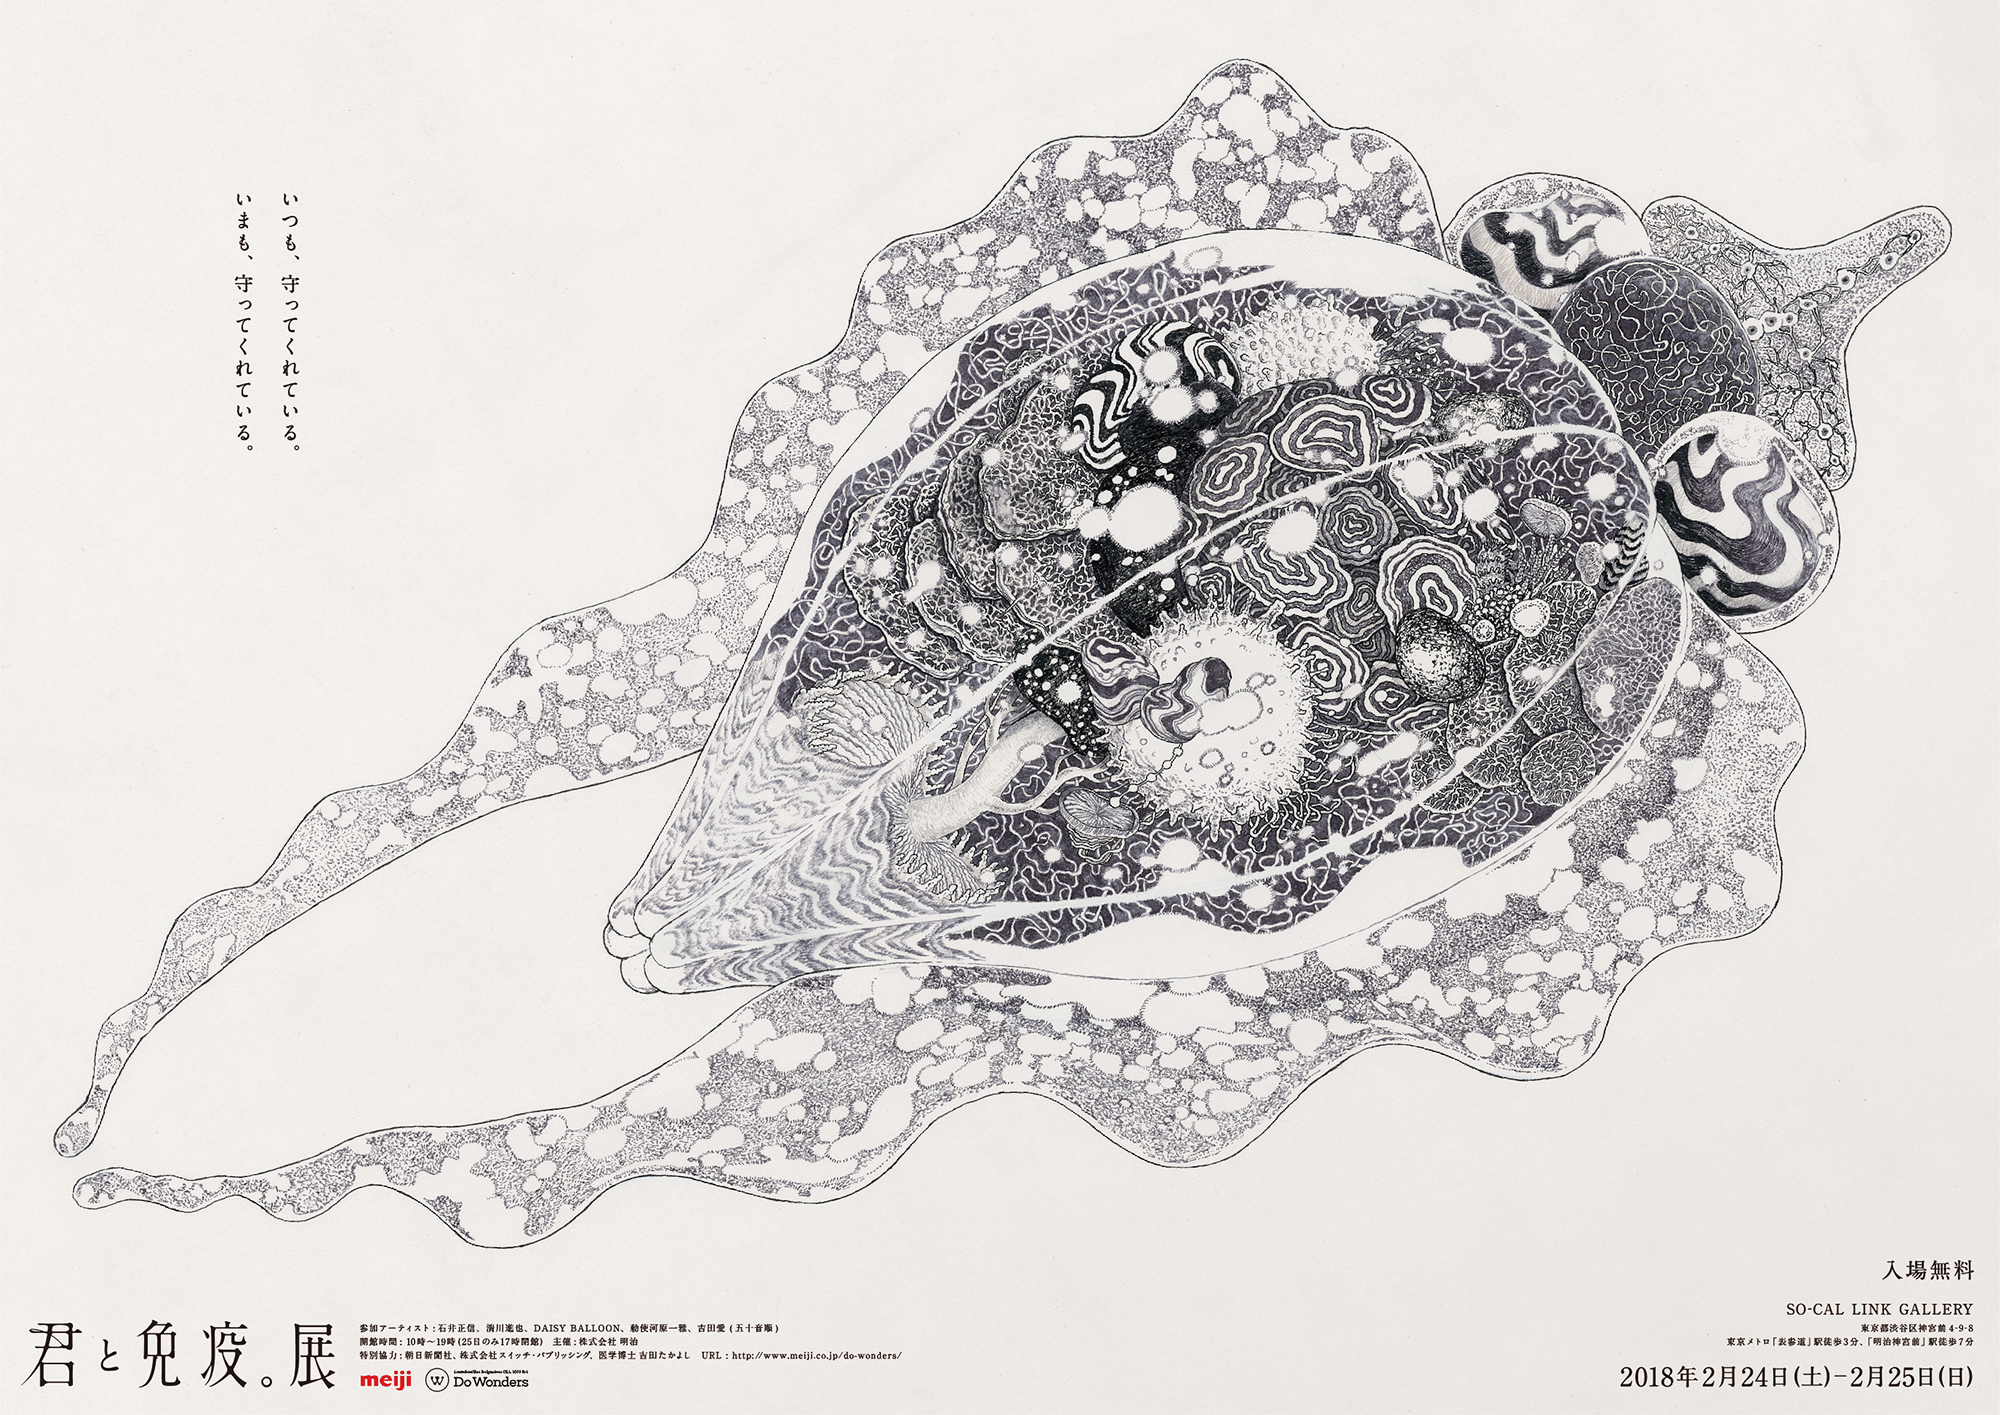 Meiji Outdoor Advert By Dentsu: You and Immune System